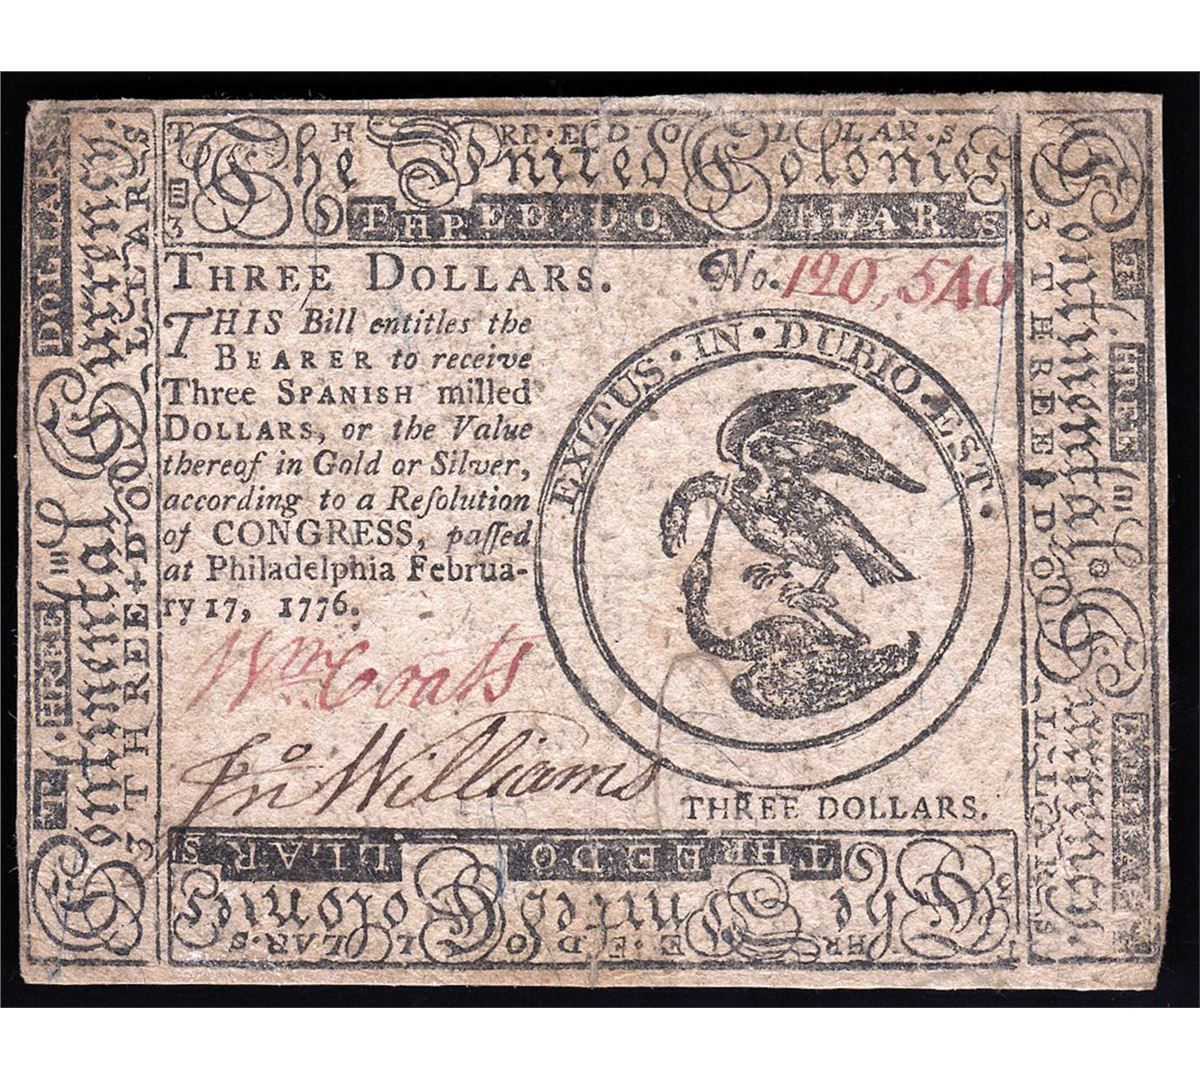 Image 1 February 2 1776 3 Spanish Milled Dollar Colonial Continental Currency